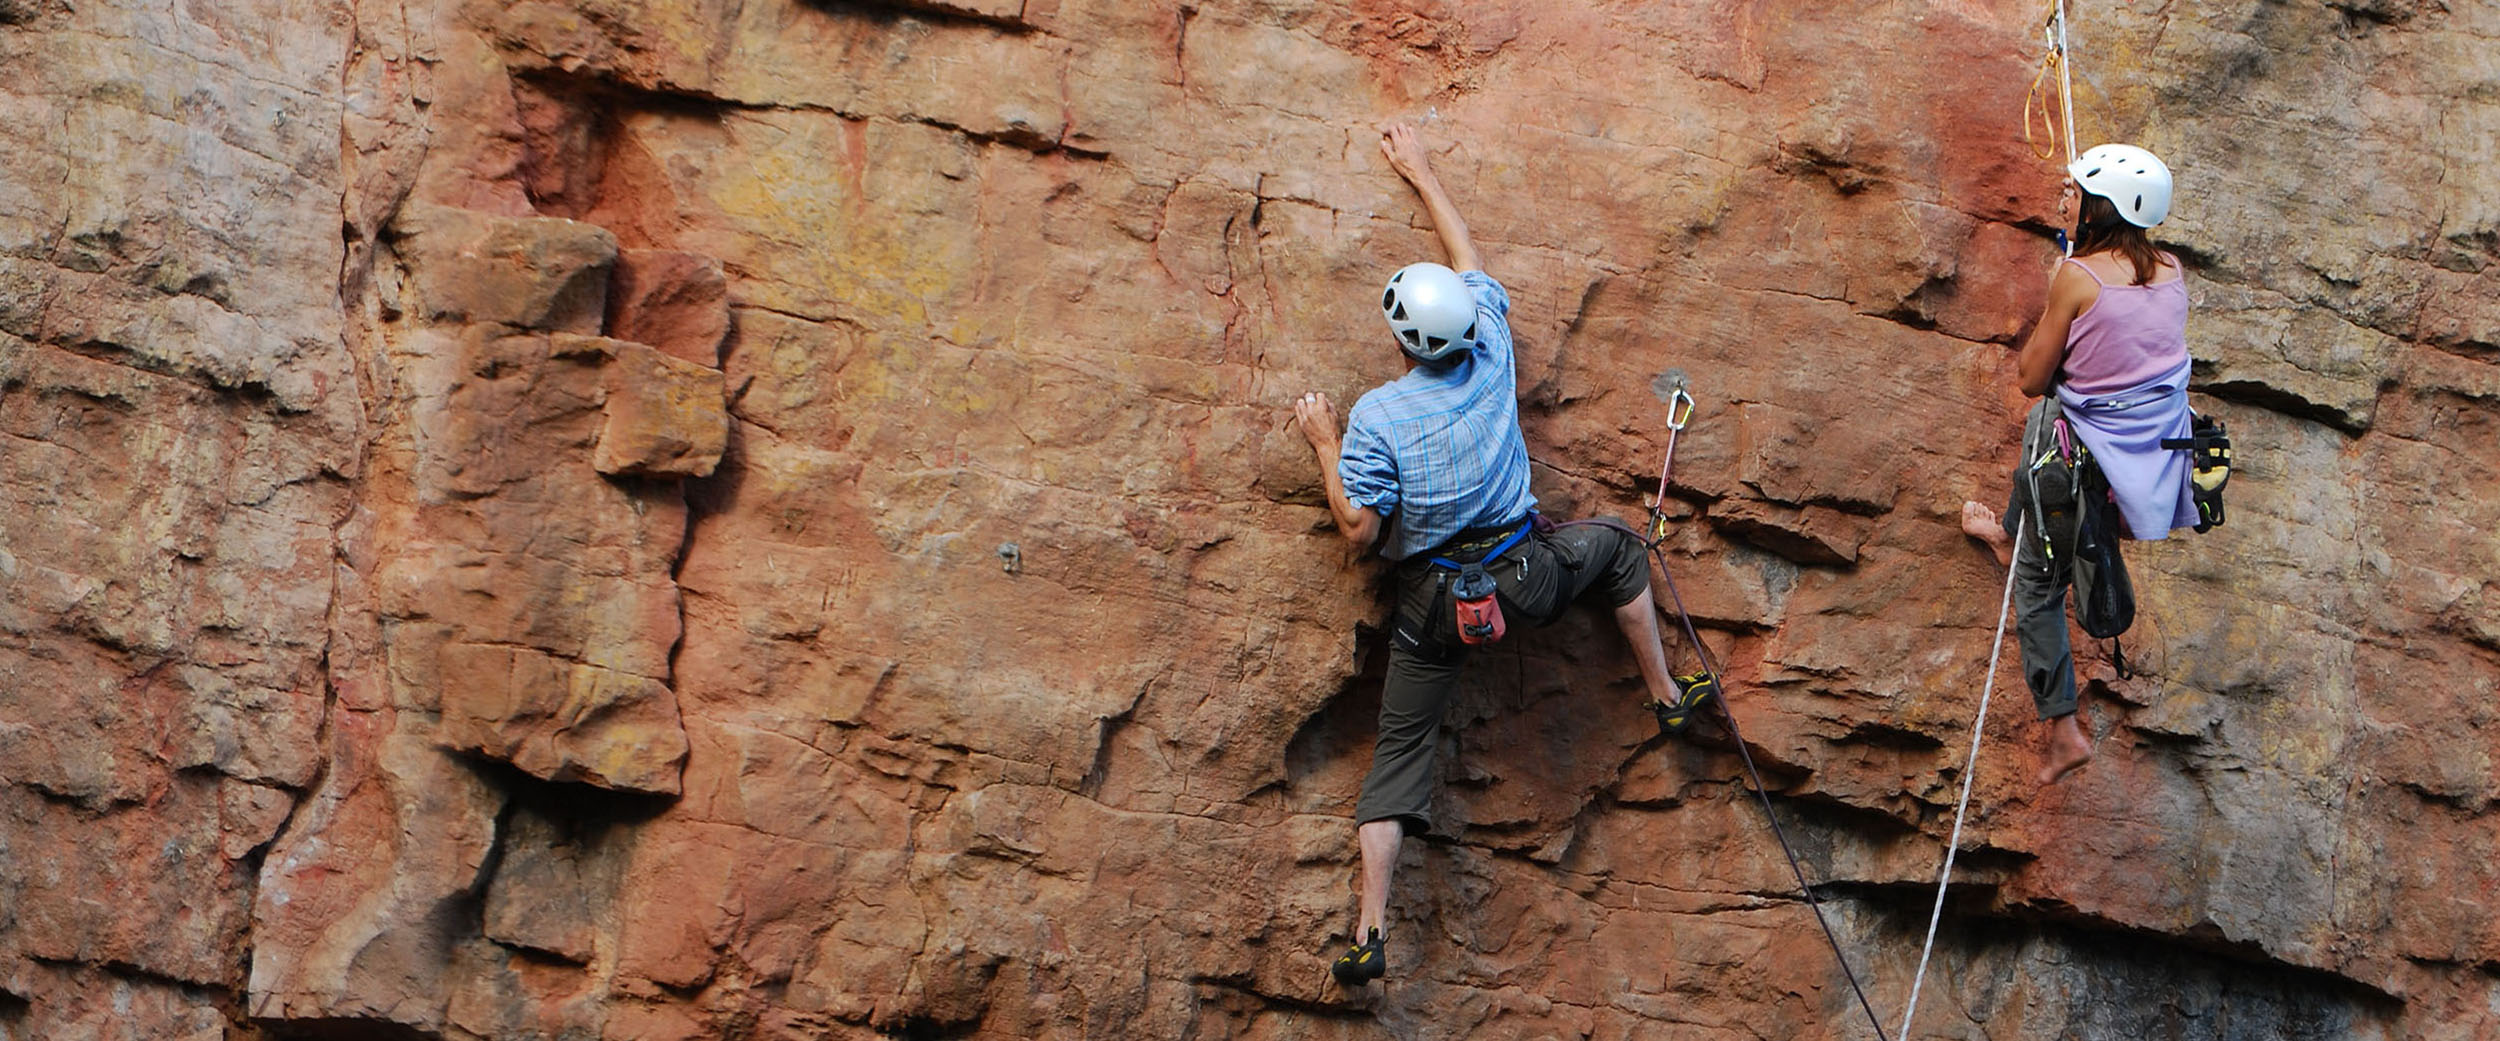 A climbing instructor hangs from a rope and offers advice to their client. The client appears to climbing through a difficult section on a sheer face